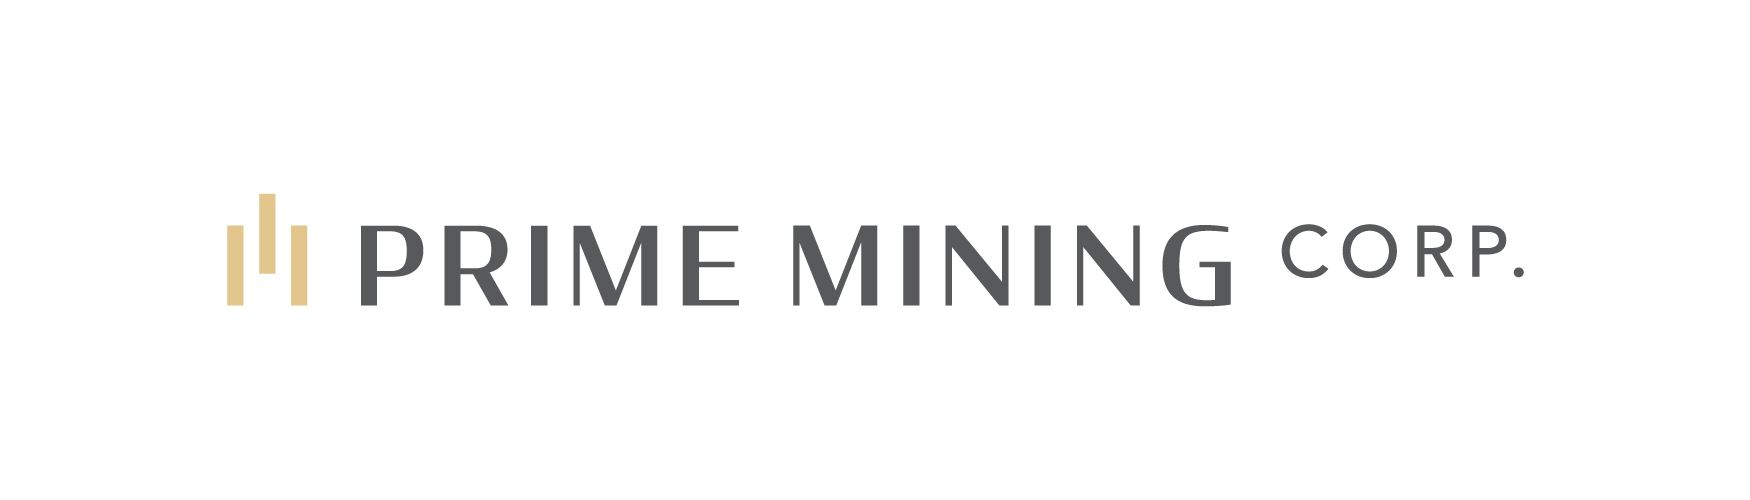 Prime Mining Provides Update and Plans for New Year